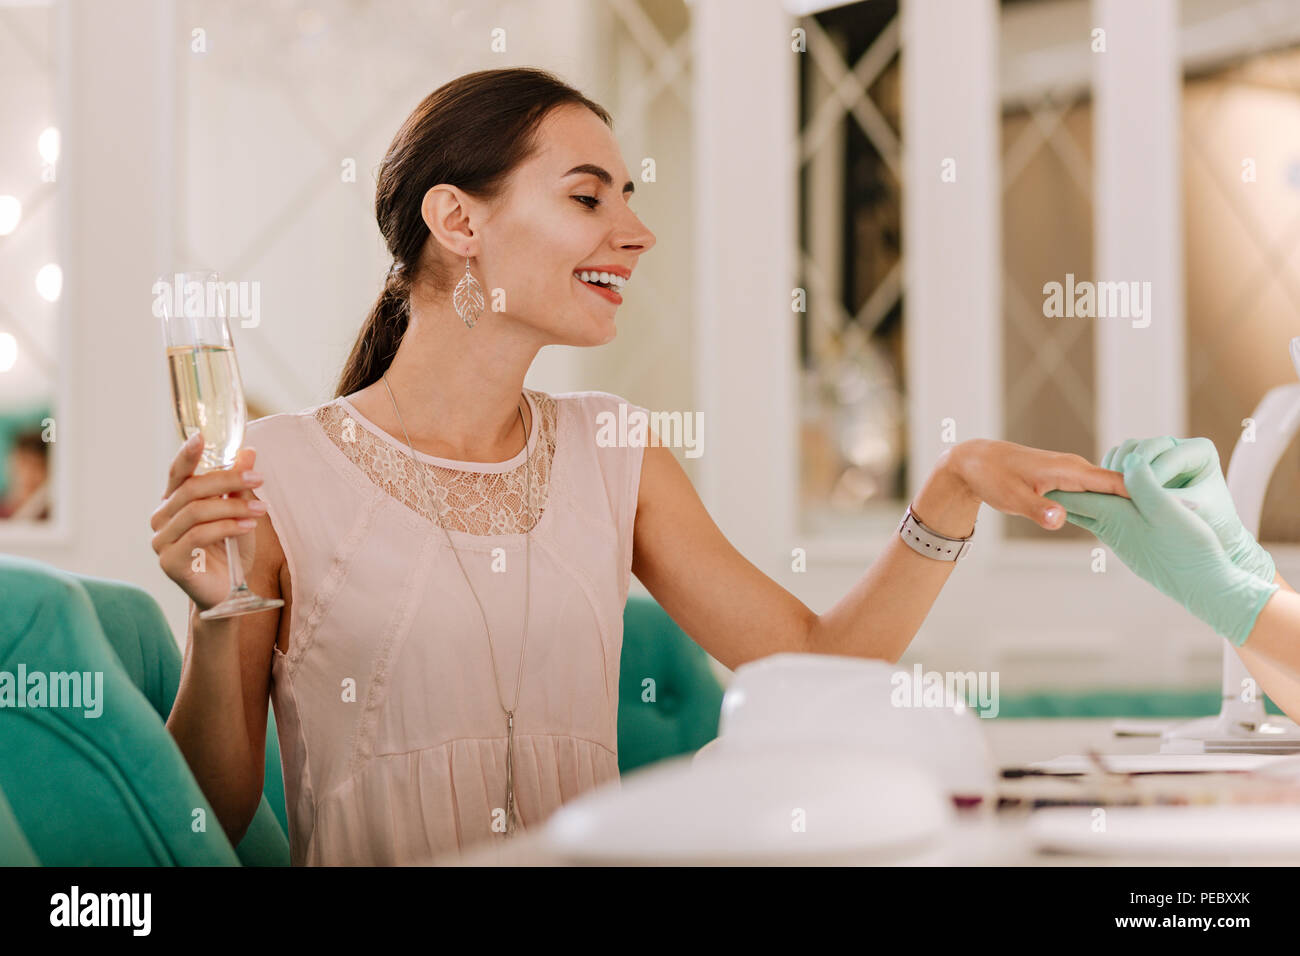 Successful businesswoman enjoying classy service in famous nail bar - Stock Image